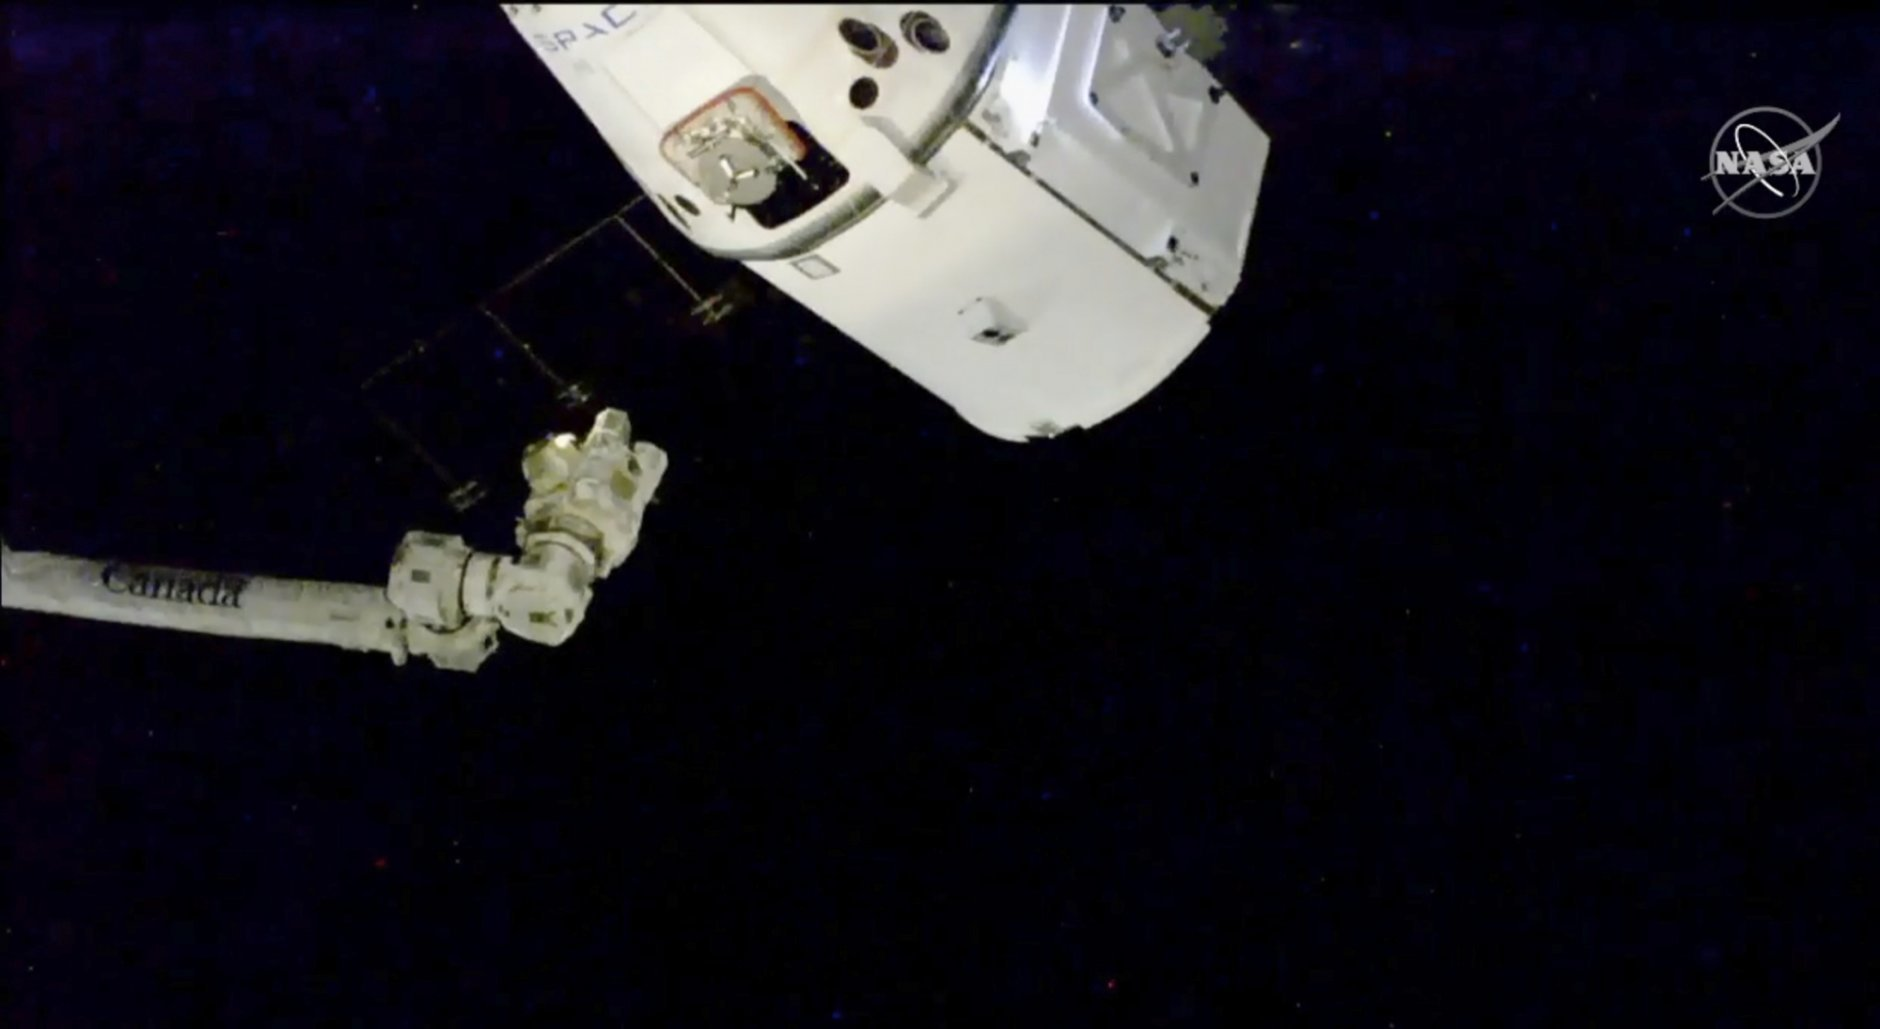 In this image taken from NASA Television, the SpaceX Dragon cargo spacecraft approaches robotic arm for docking to the International Space Station, Saturday, Dec. 8, 2018. A SpaceX delivery full of  Christmas goodies has arrived at the International Space Station. The Dragon capsule pulled up at the orbiting lab Saturday, three days after launching from Florida. (NASA TV via AP)